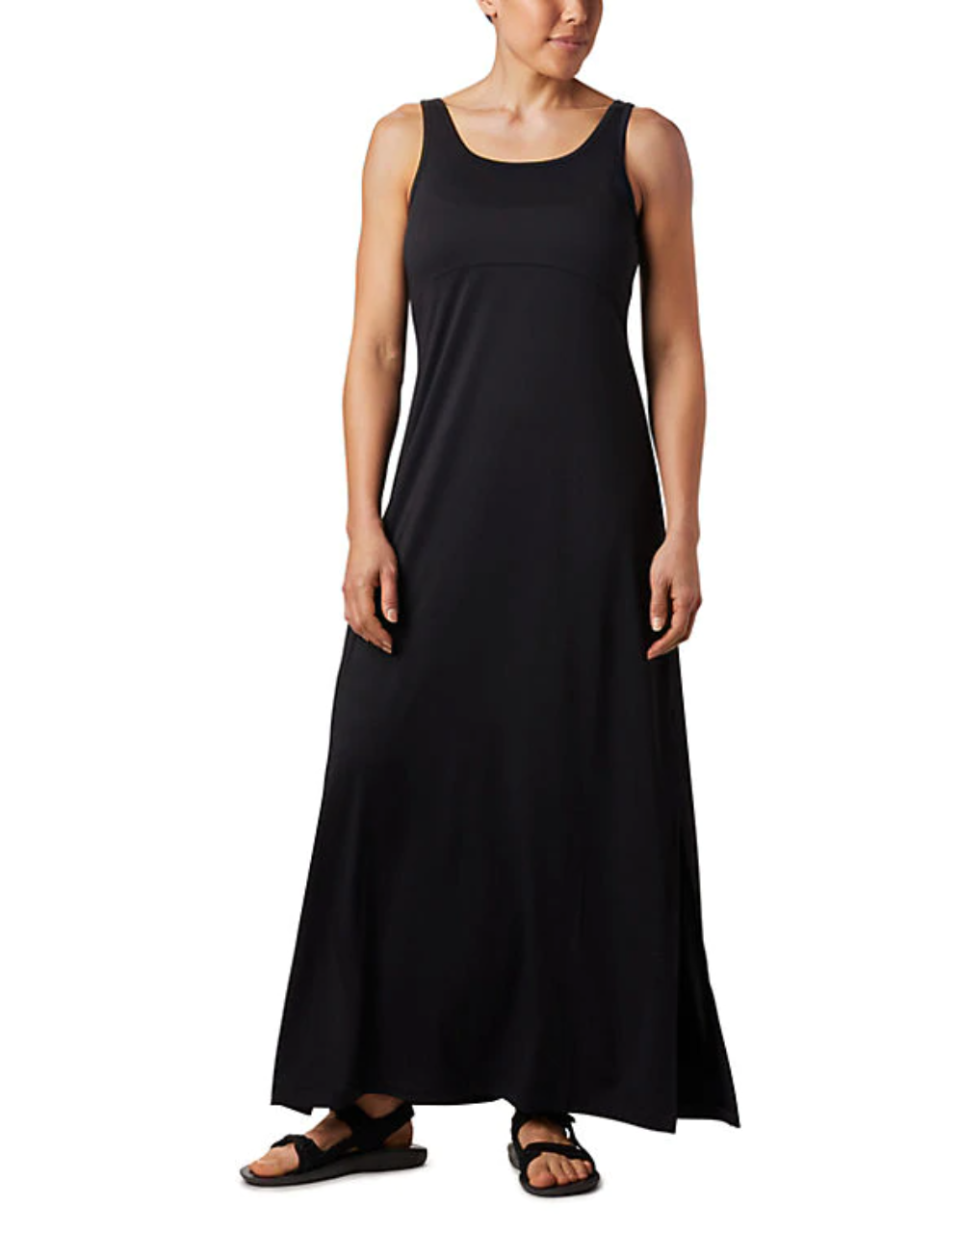 Women's Freezer™ Maxi Dress.